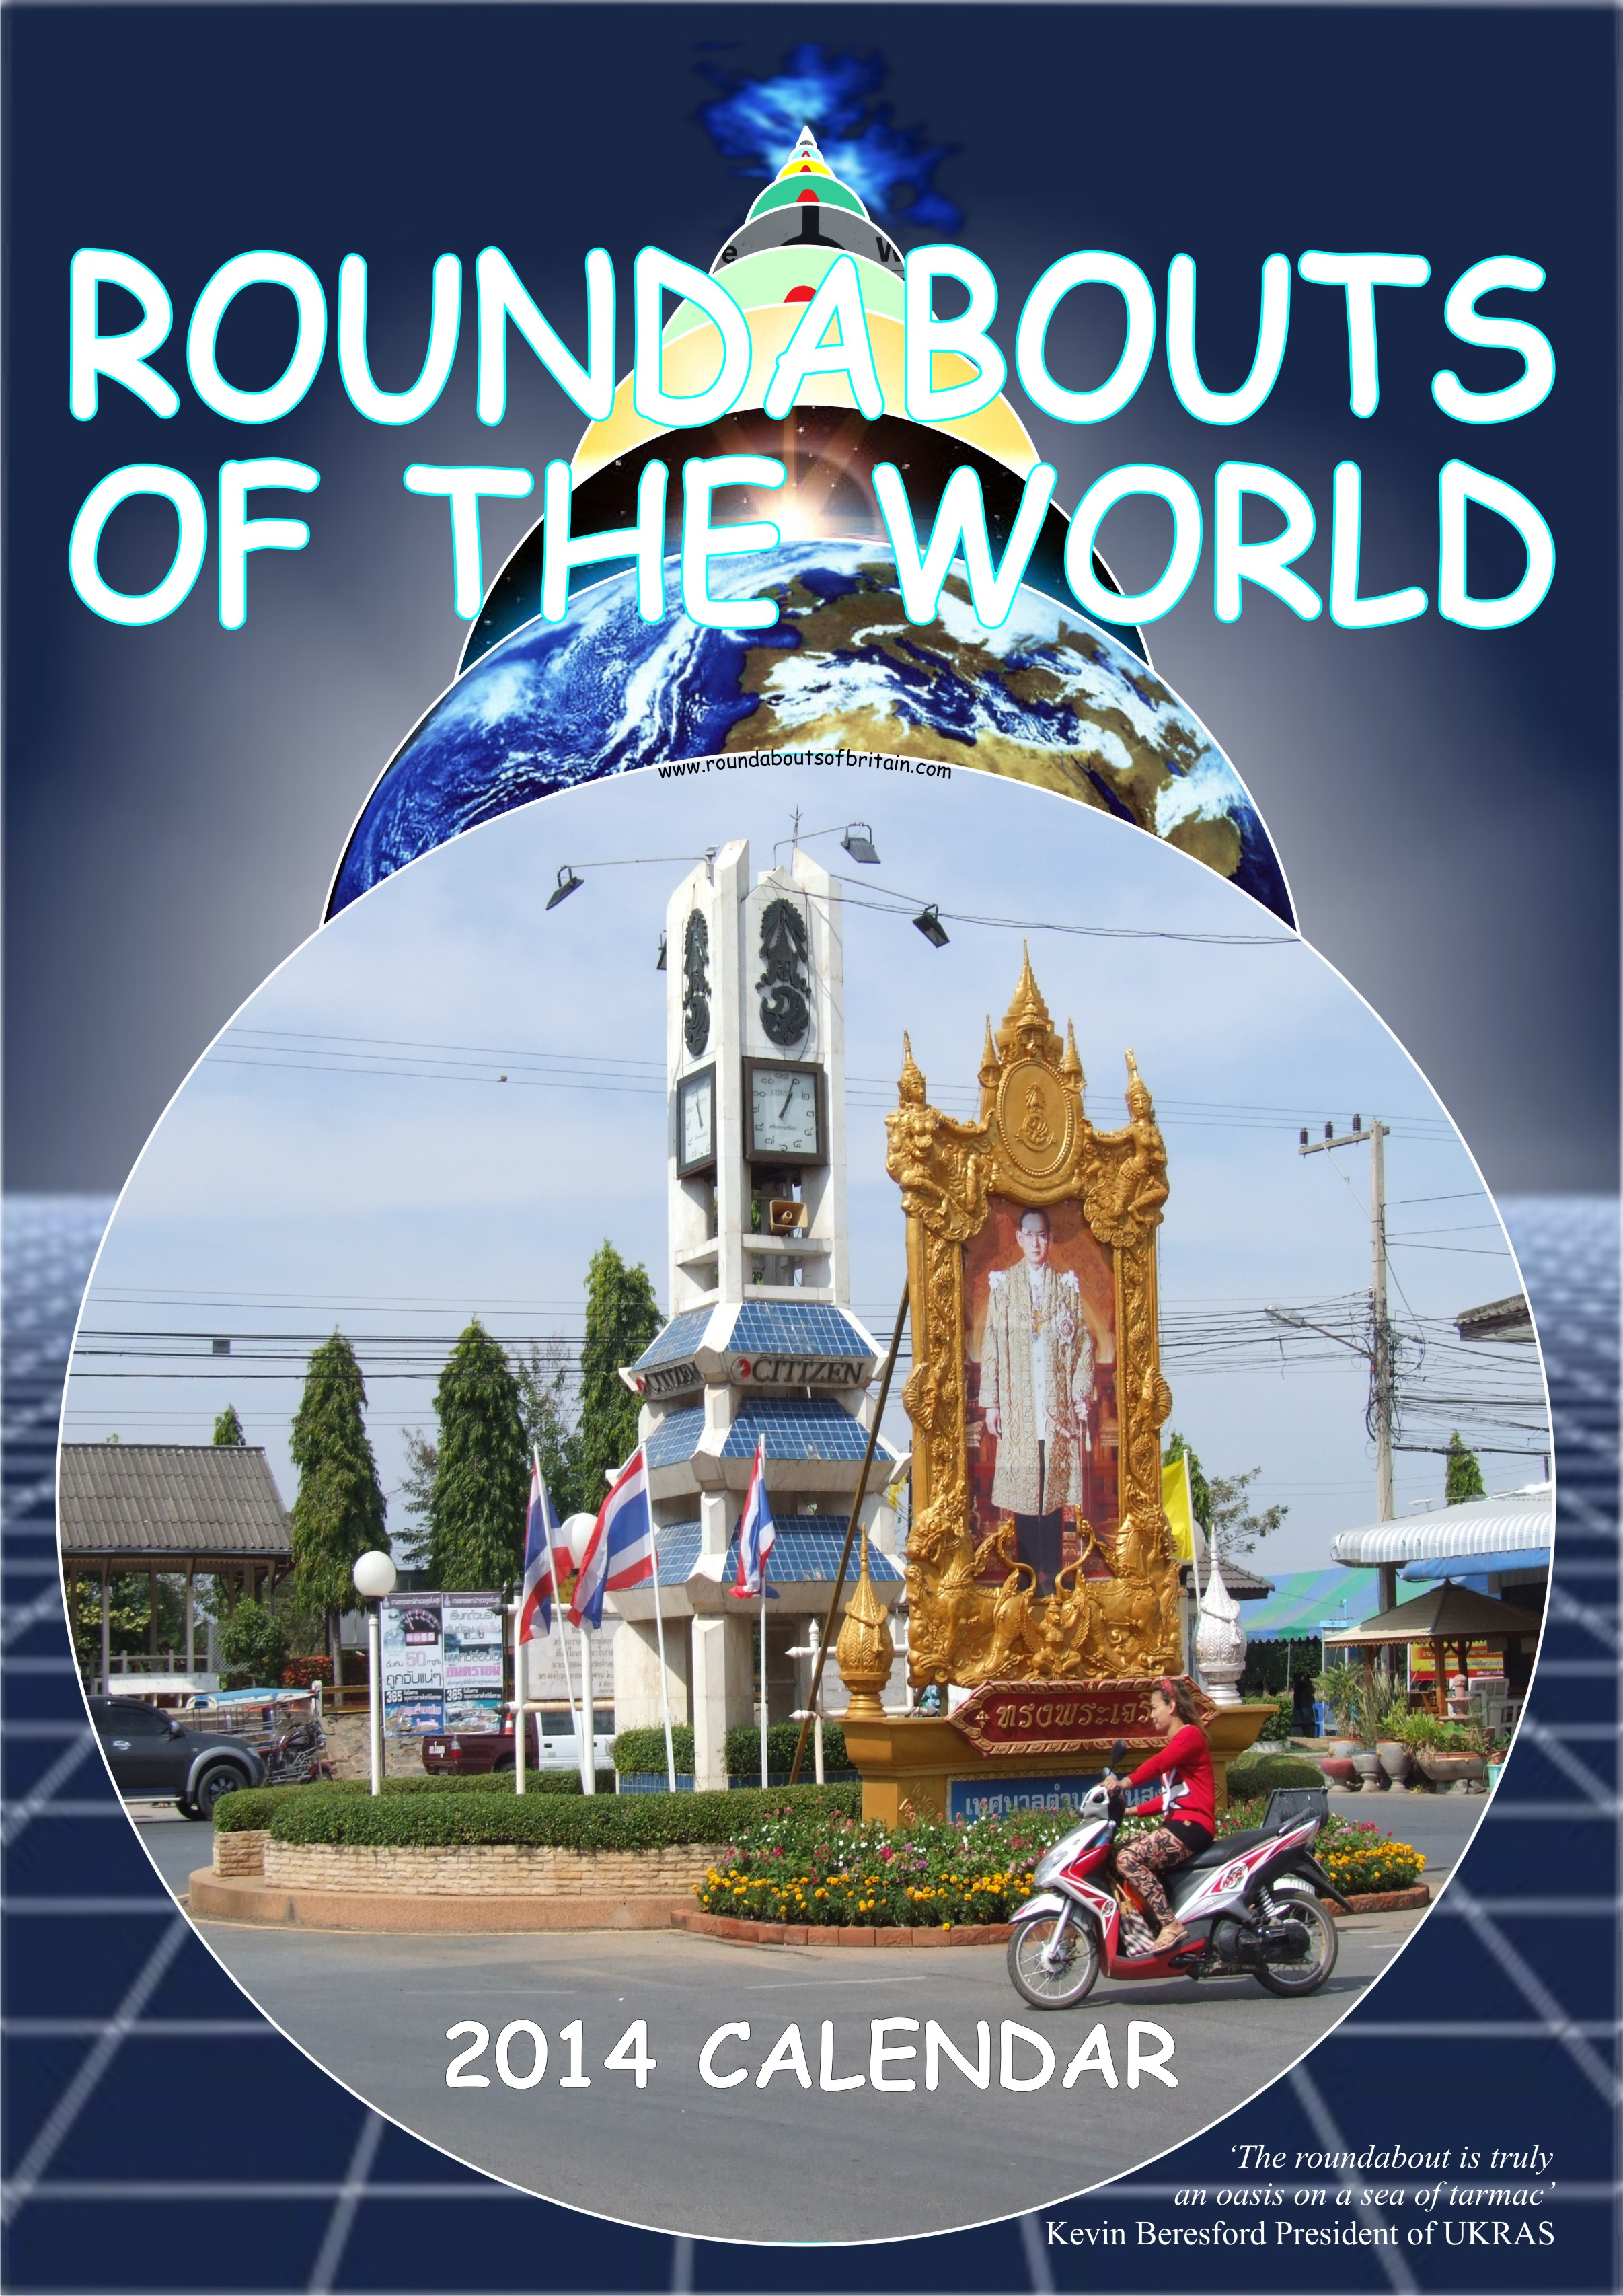 Roundabouts of the World 2014 calendar